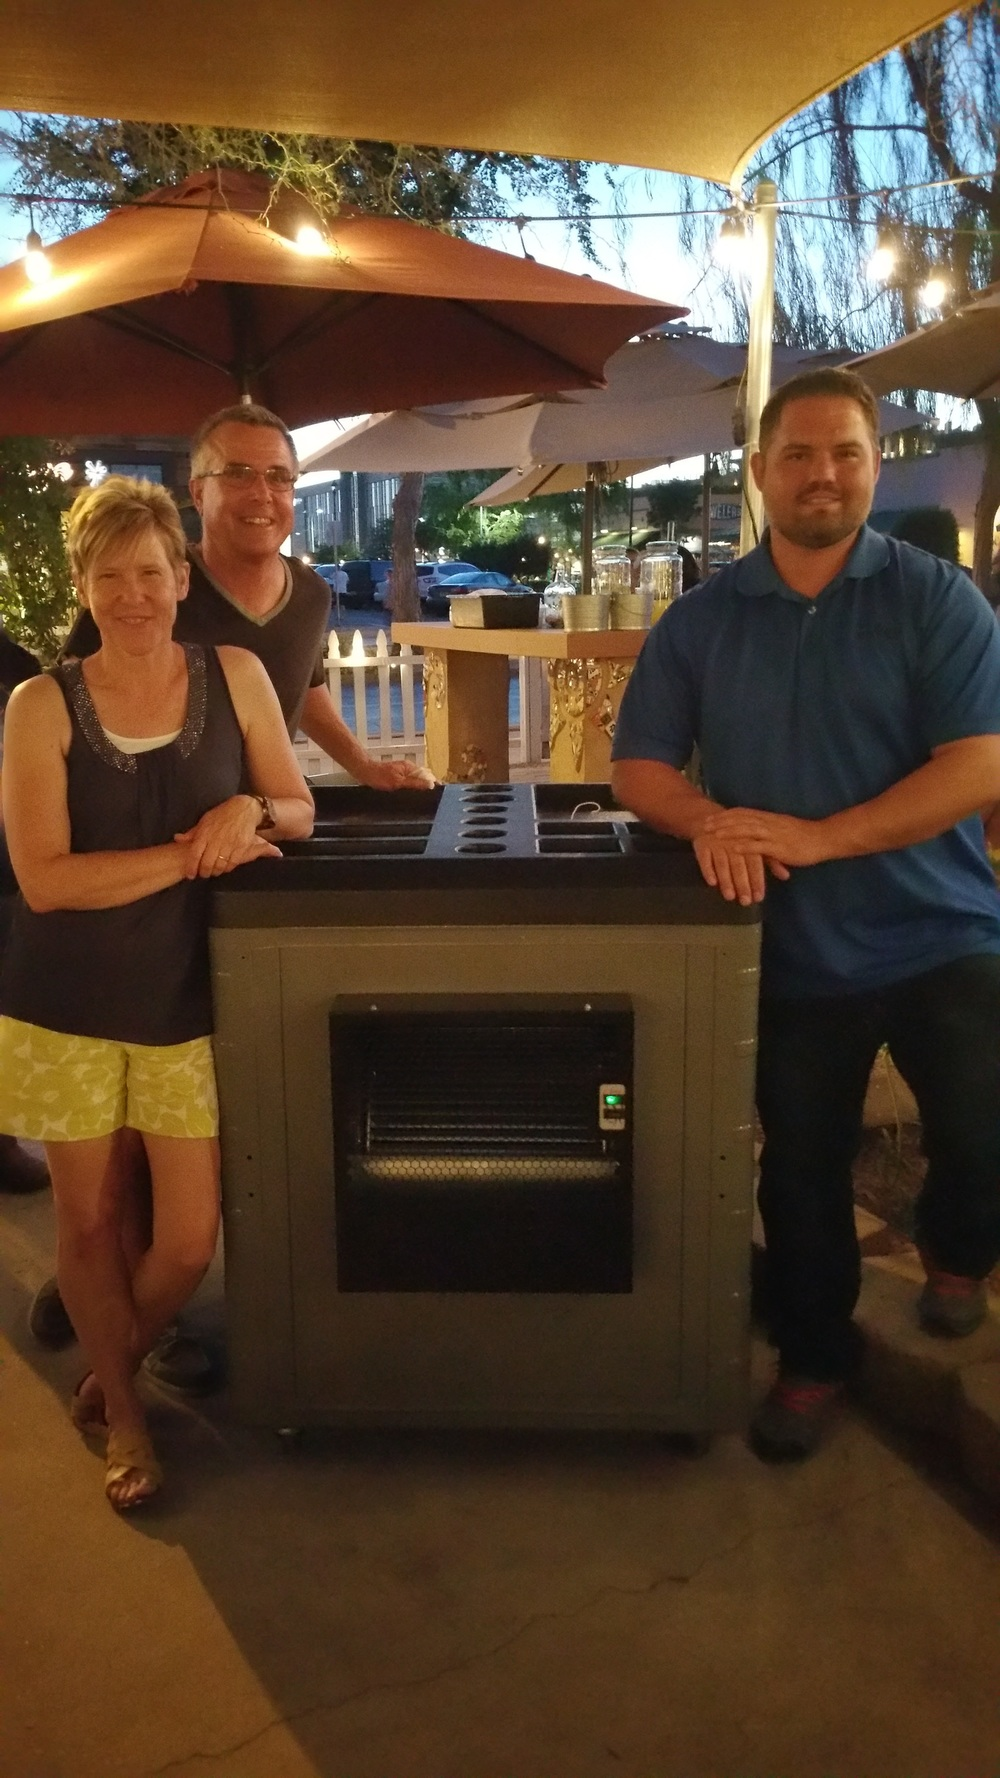 The owners of Bergies Coffee Roast House, Dave, and one of the coolers we donated from the event.